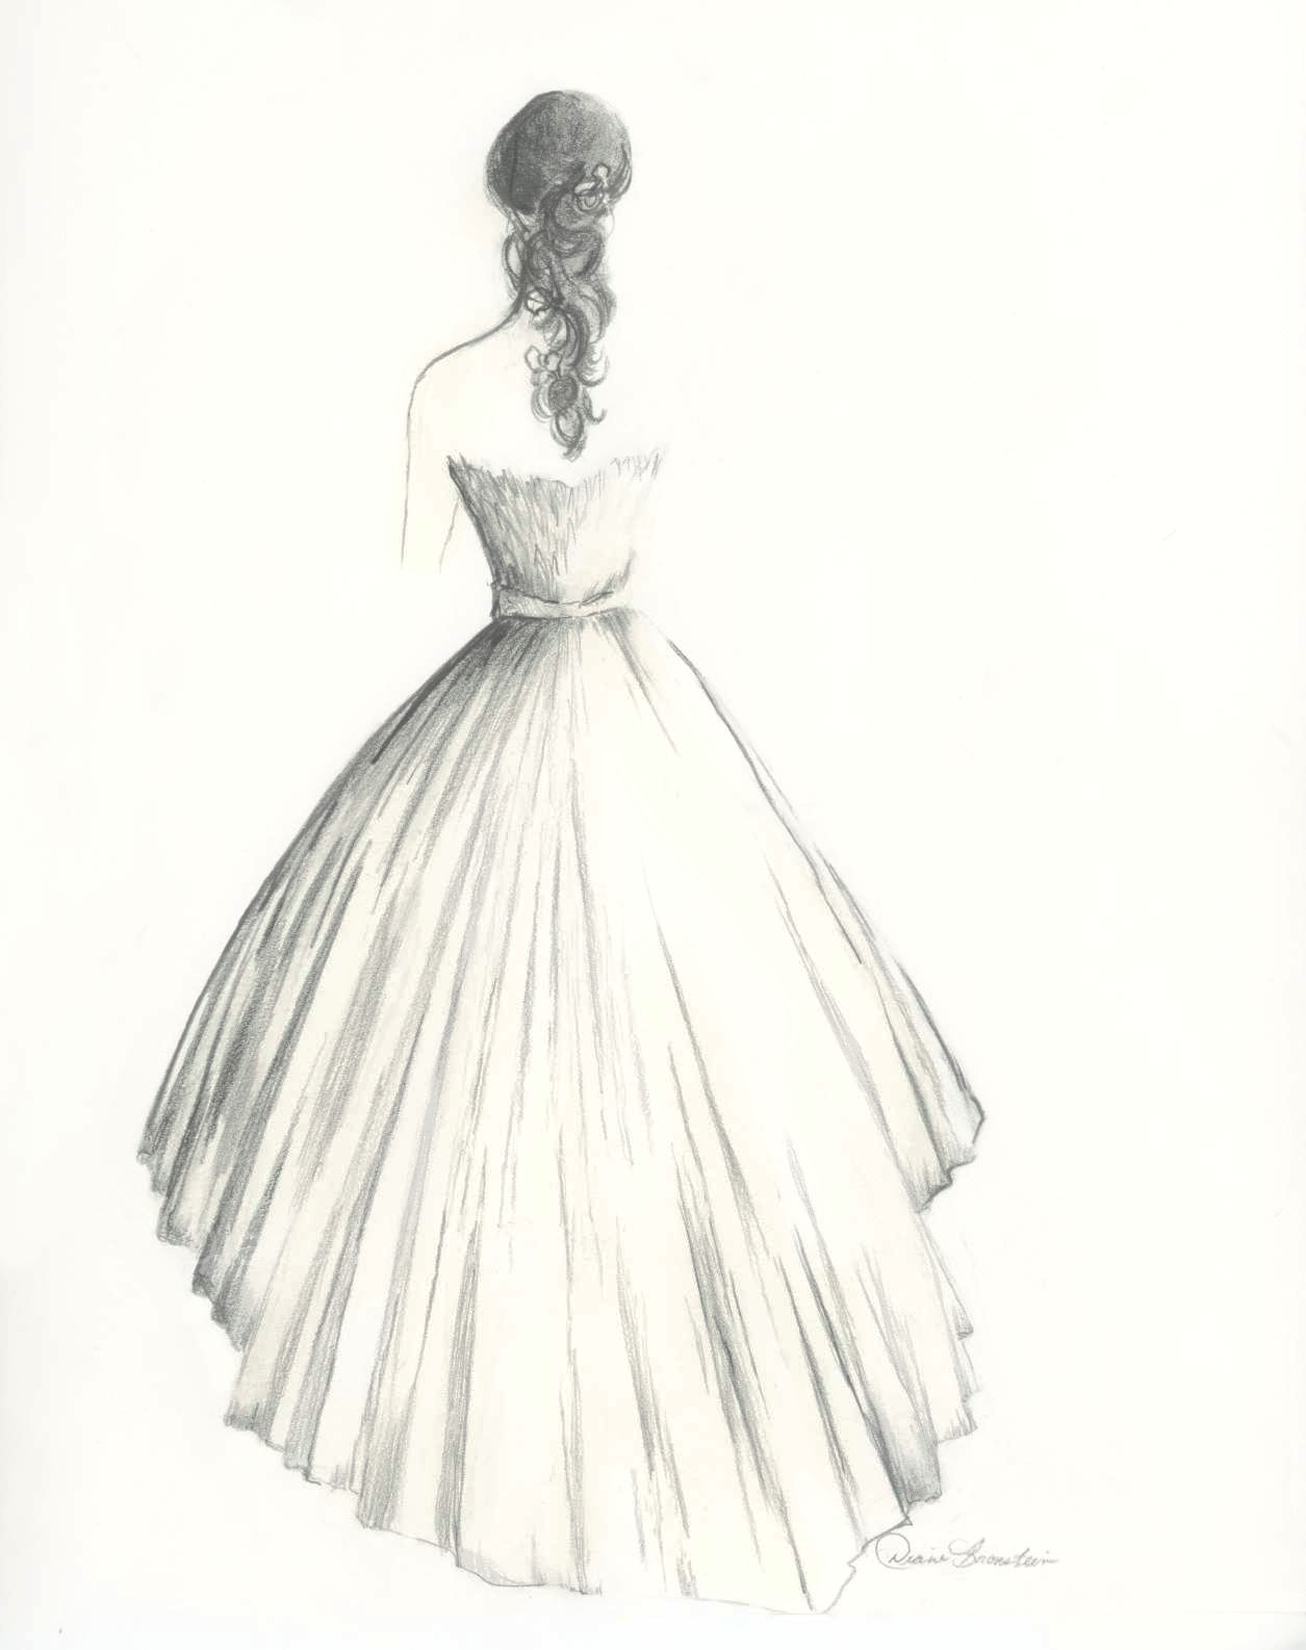 Drawn women big By dress Bride bride of